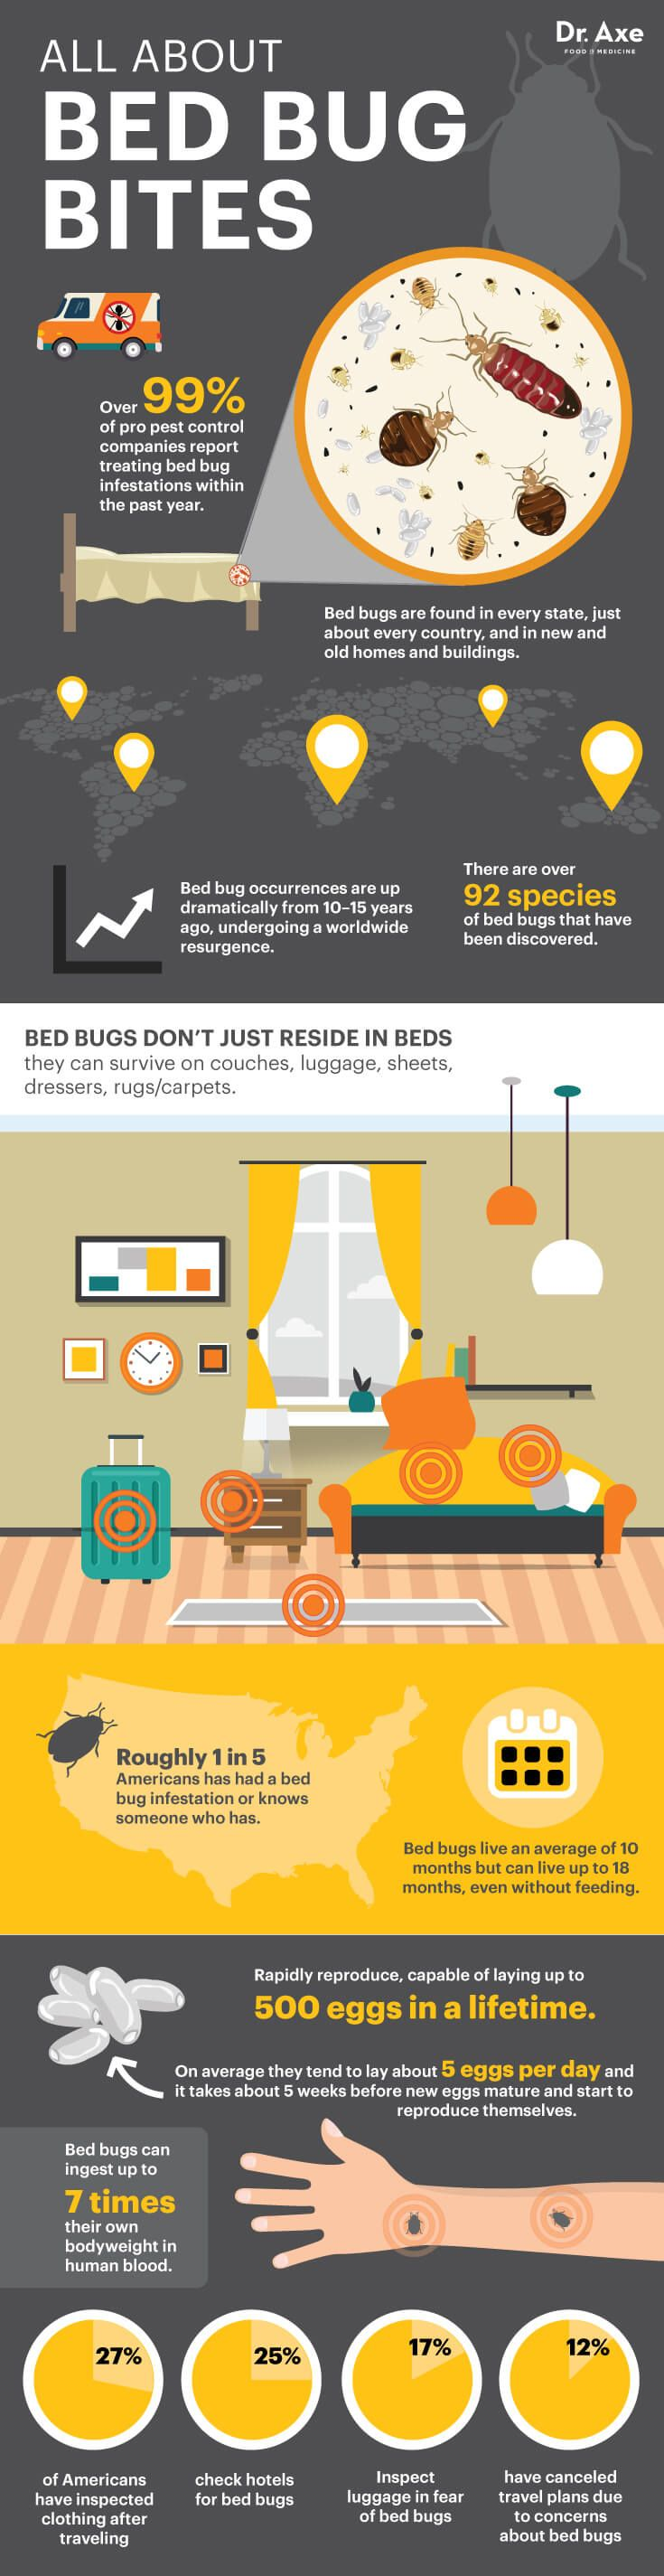 All about bed bug bites - Dr. Axe http://www.draxe.com #health #holistic #natural